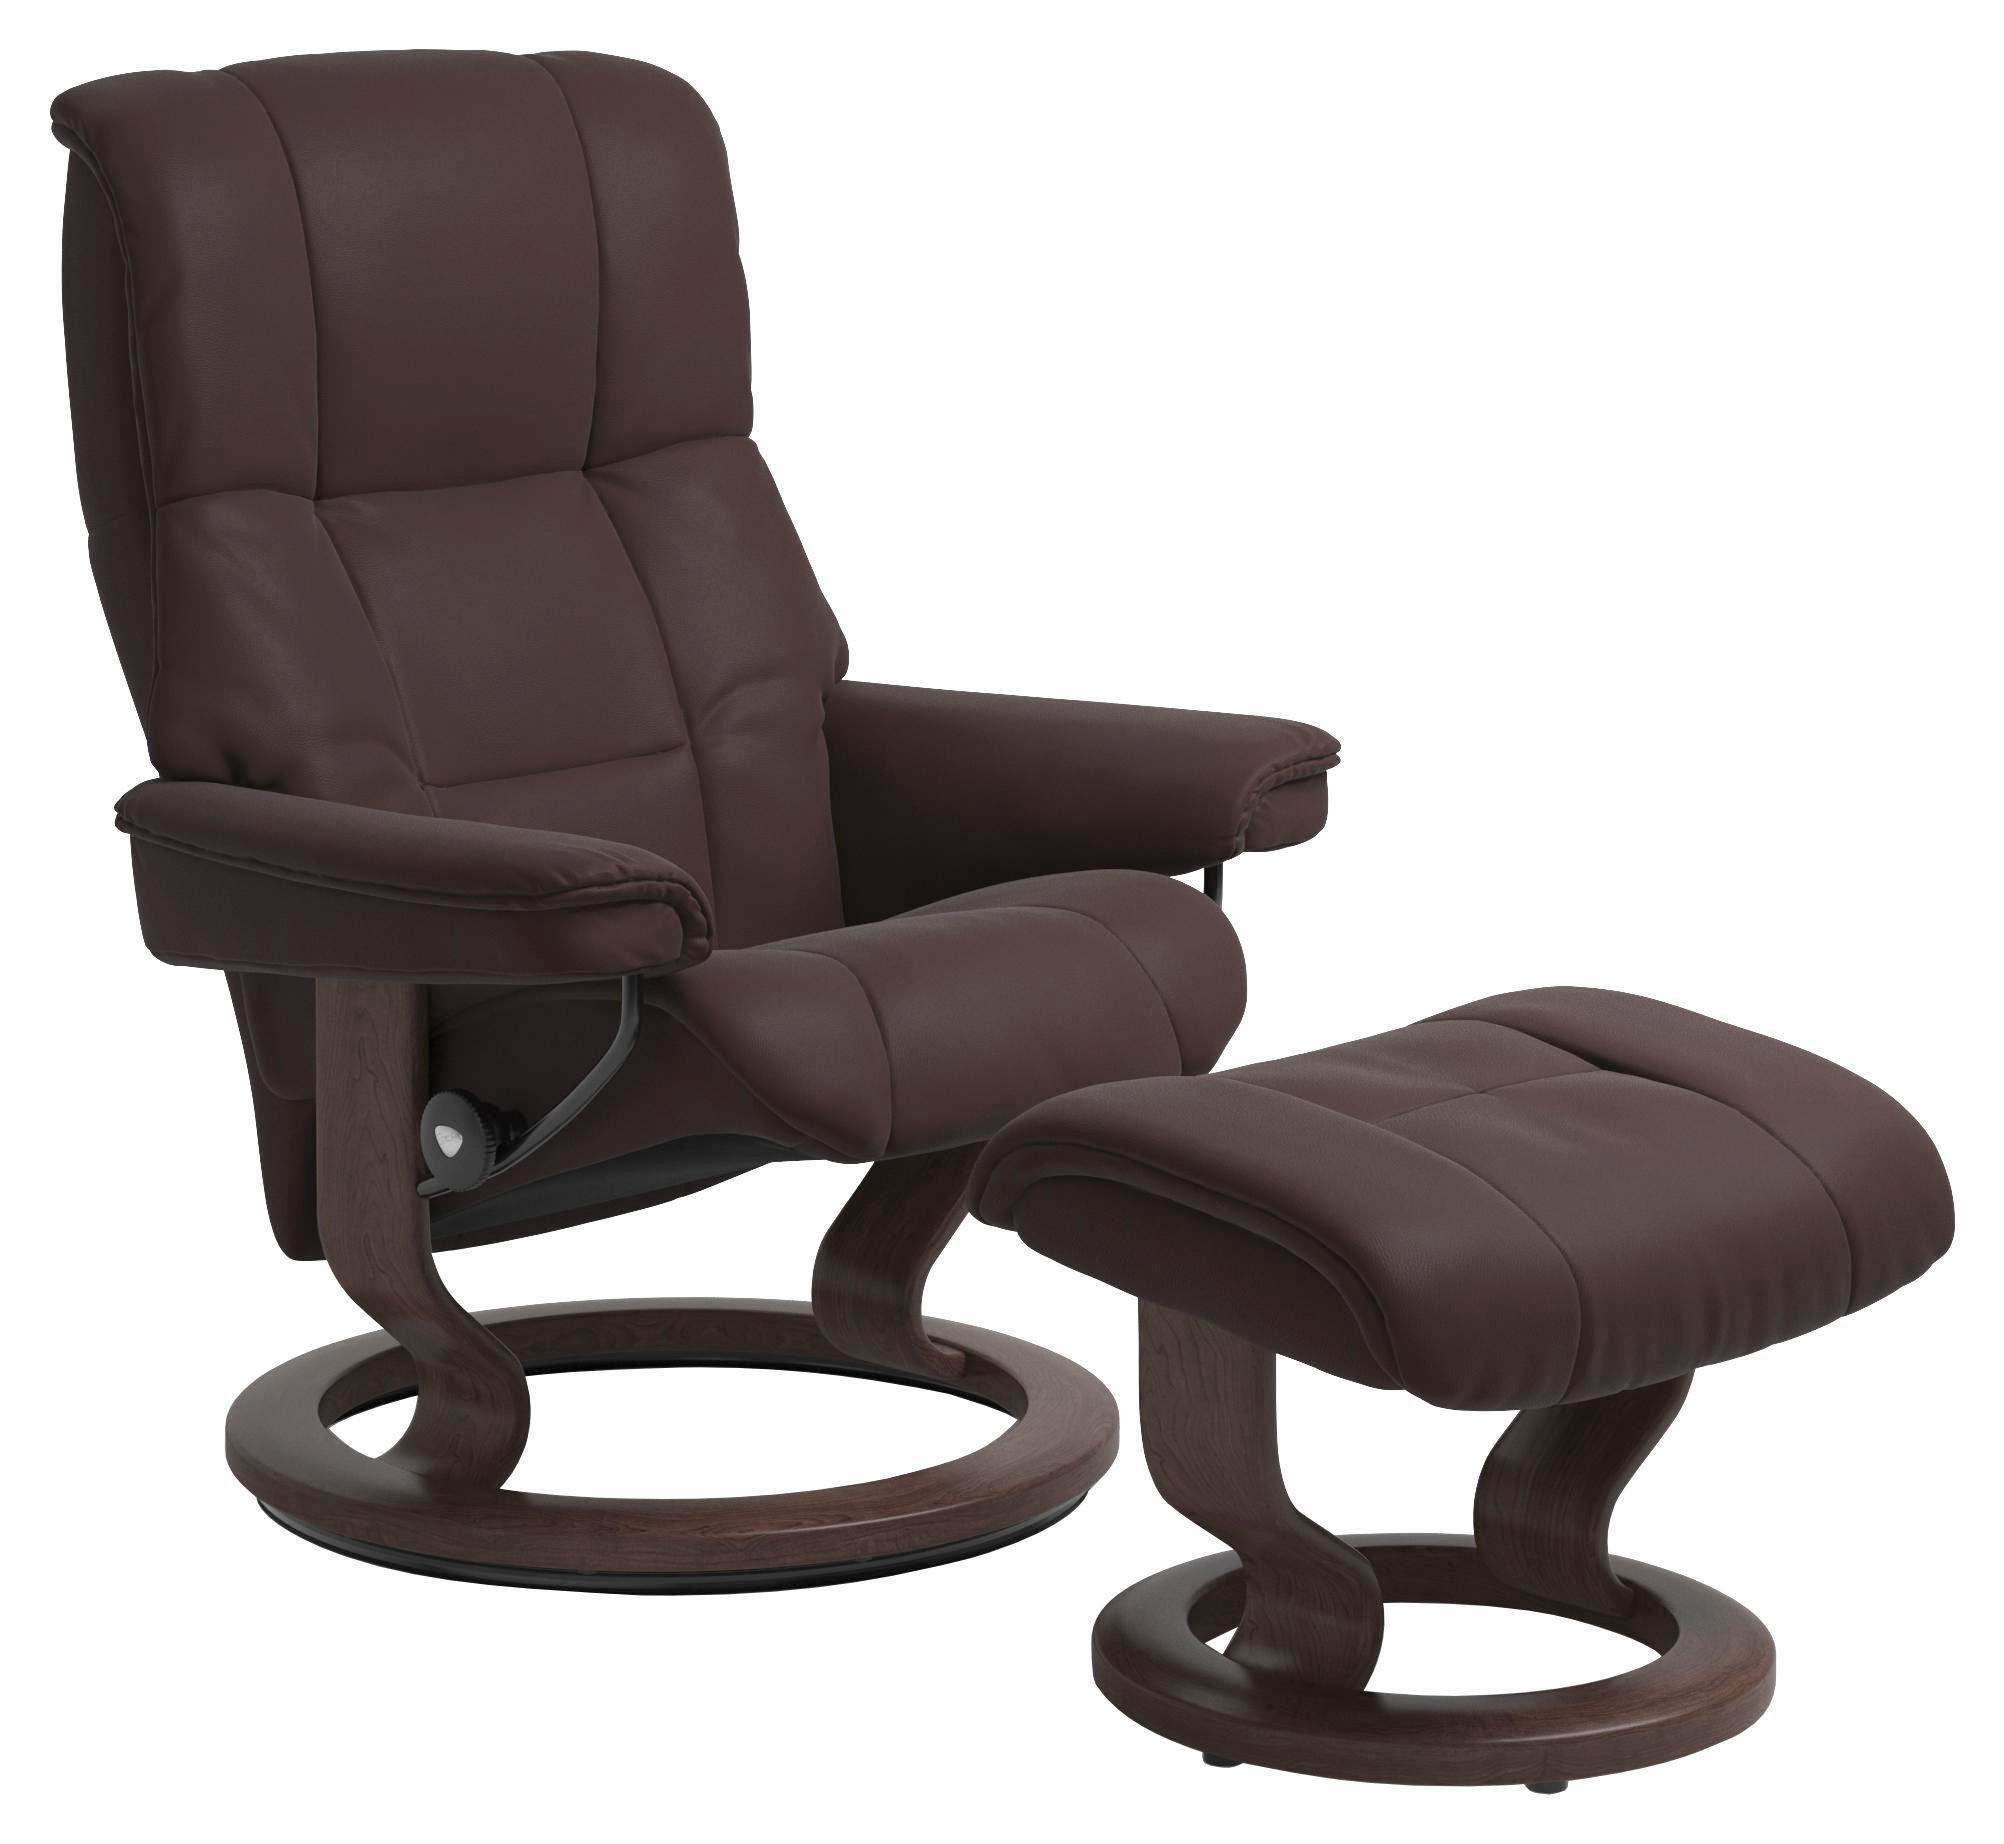 Stressless Sessel Defekt Sesselset Mayfair M Echtleder Hocker Relaxfunktion